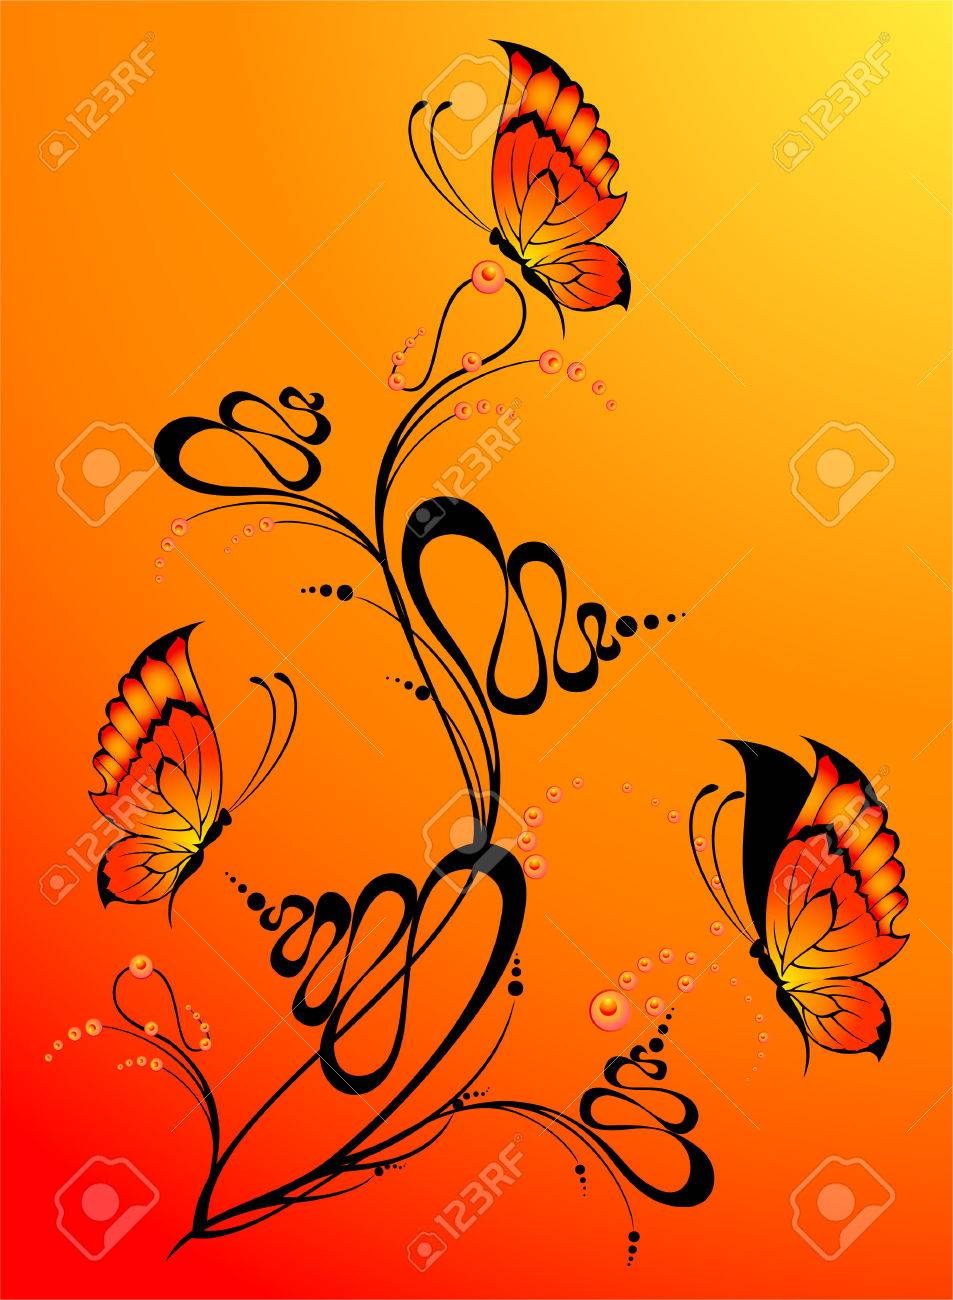 Abstract floral background with butterflies for design Stock Vector - 5578127